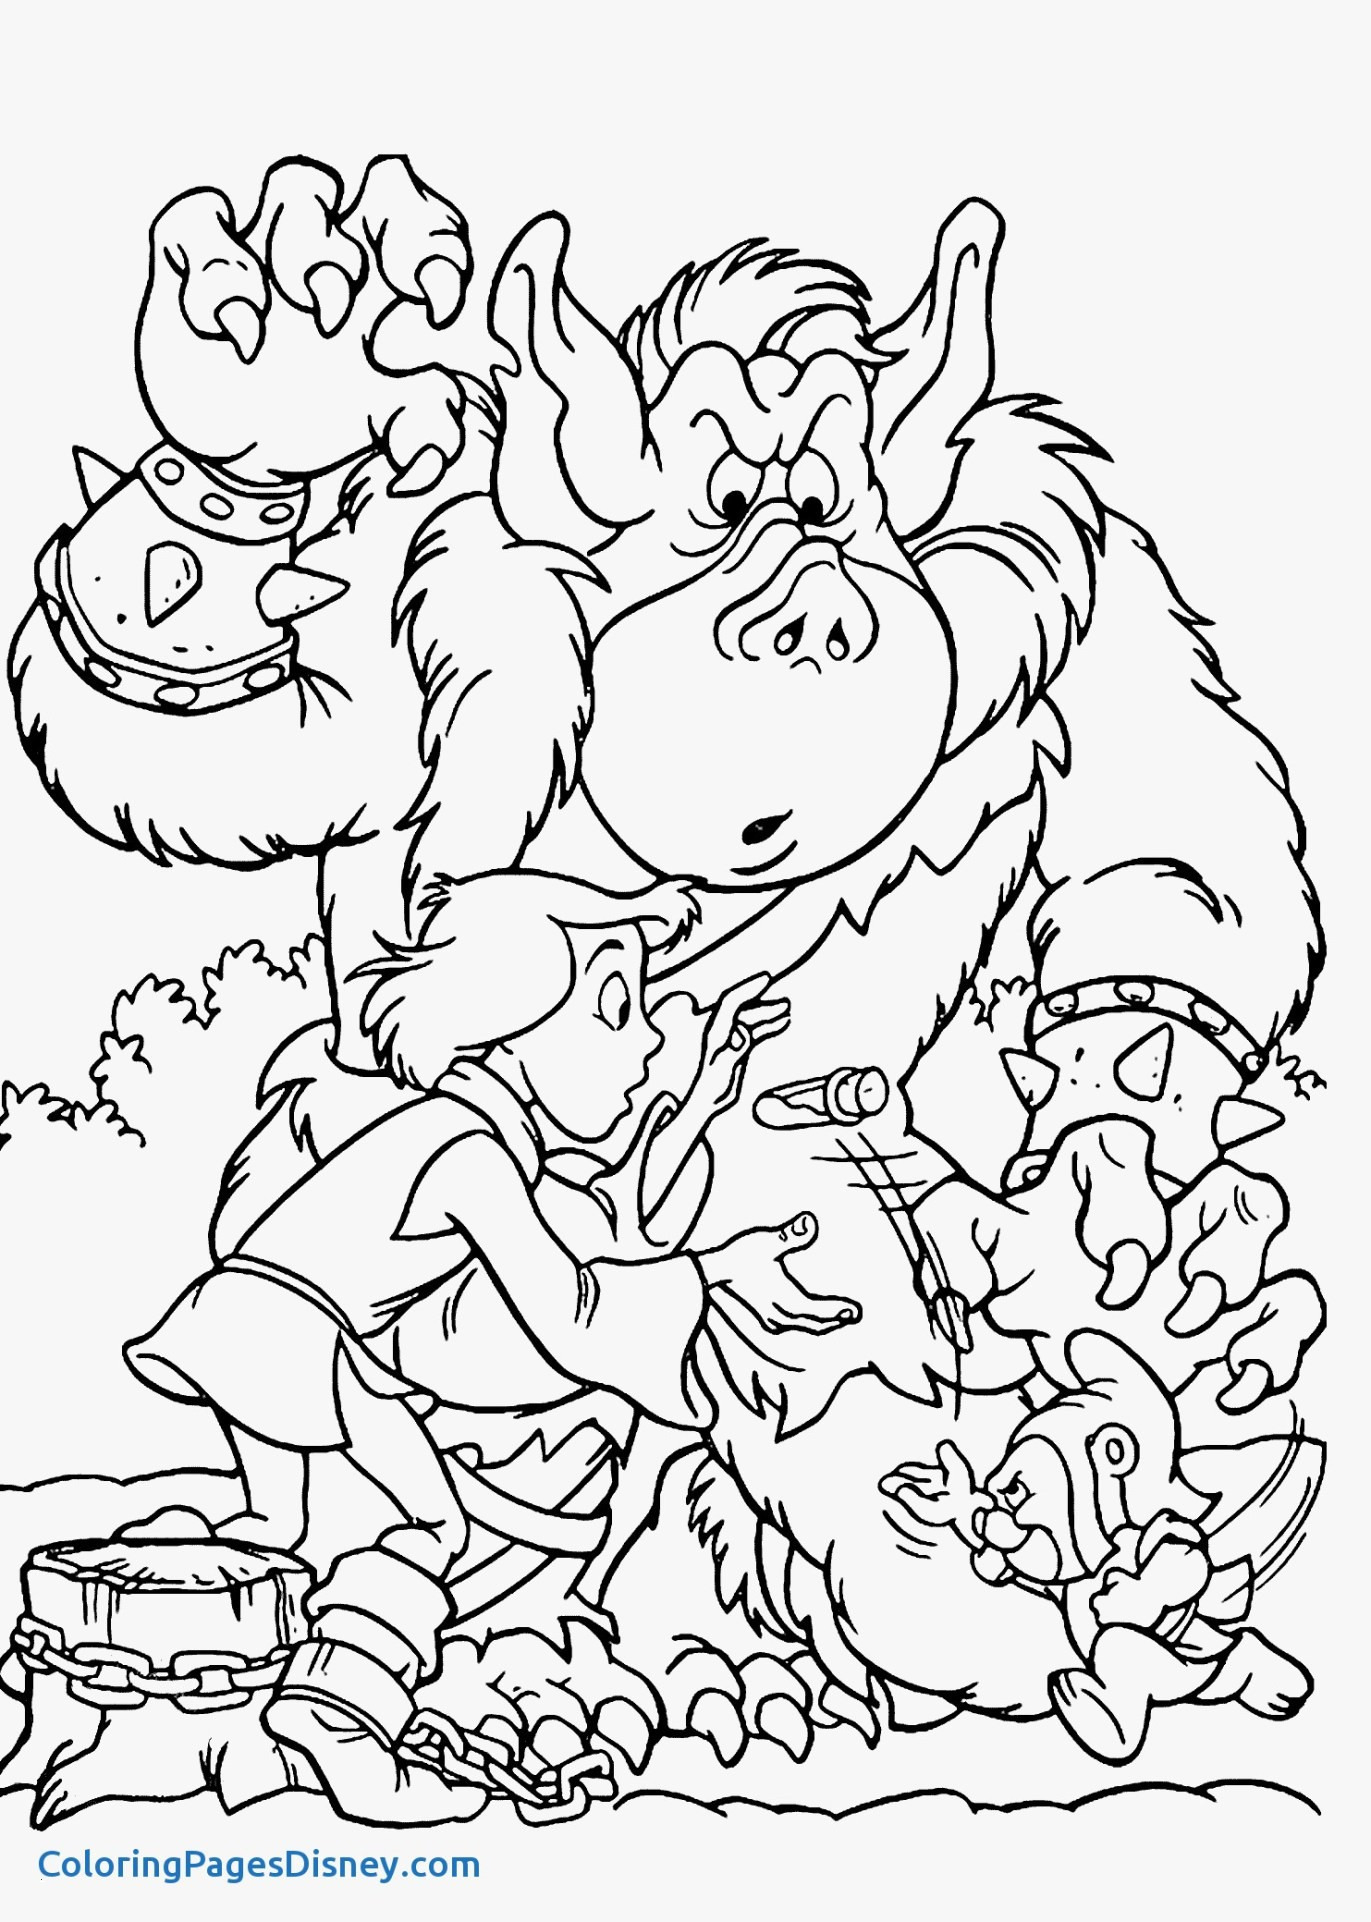 bible story coloring pages preschoolers Download-Free Bible Coloring Pages Moses 28 Unique Bible Story Coloring Pages Cloud9vegas 3-h